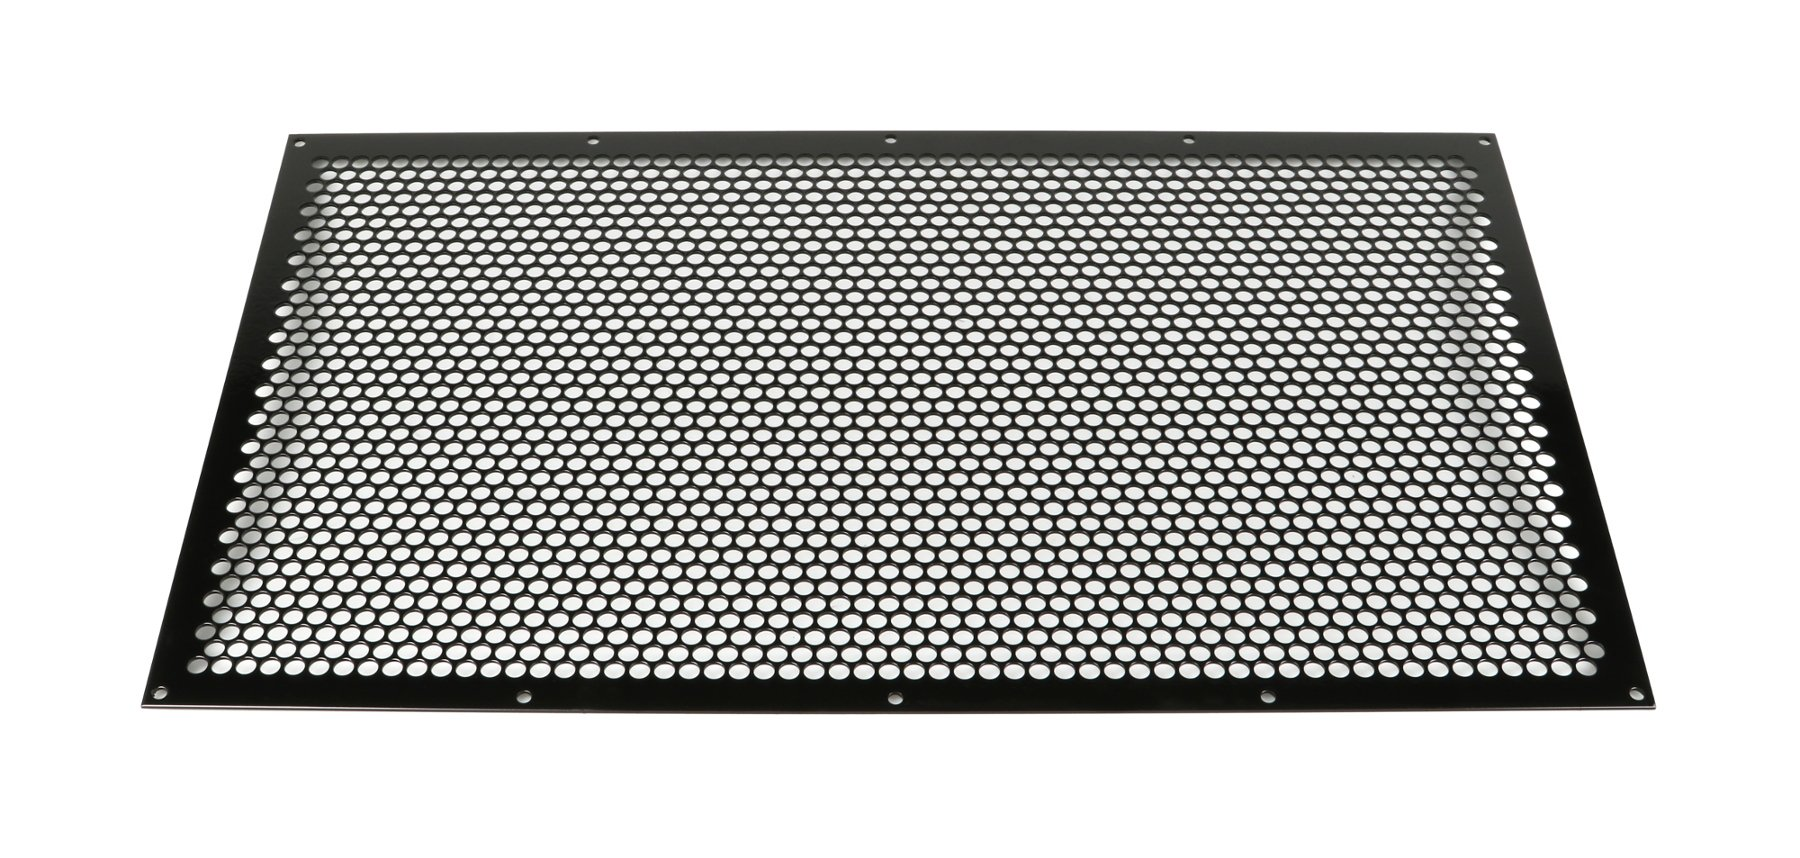 LA212 Replacement Metal Grille